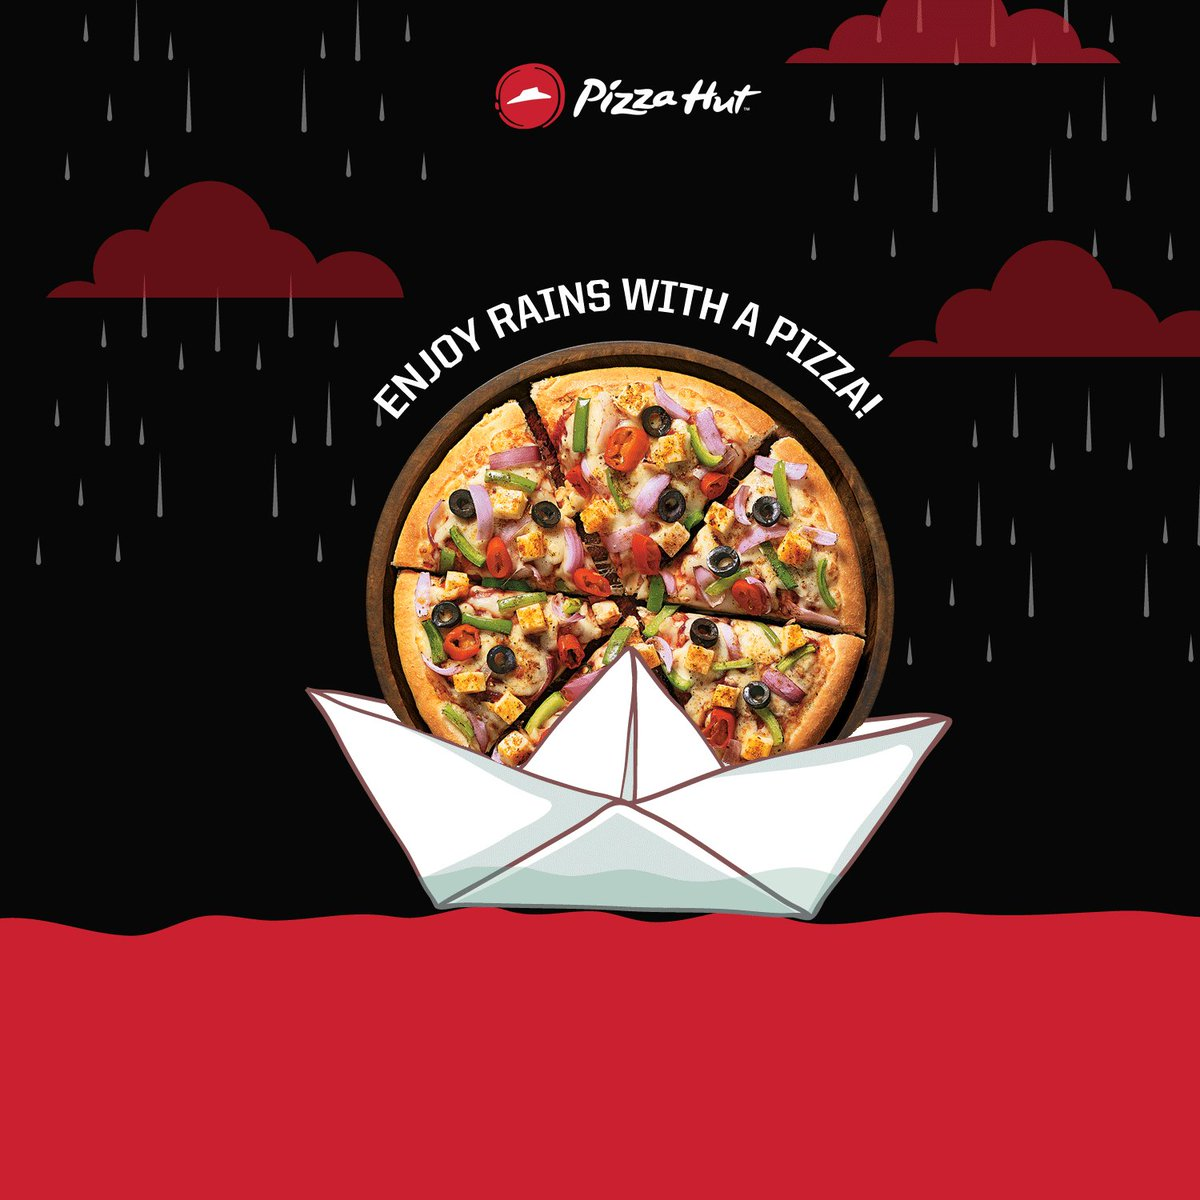 Rains Pizza Total Bliss RT if you agree. DelhiRains https t.co TRW2iCccgv